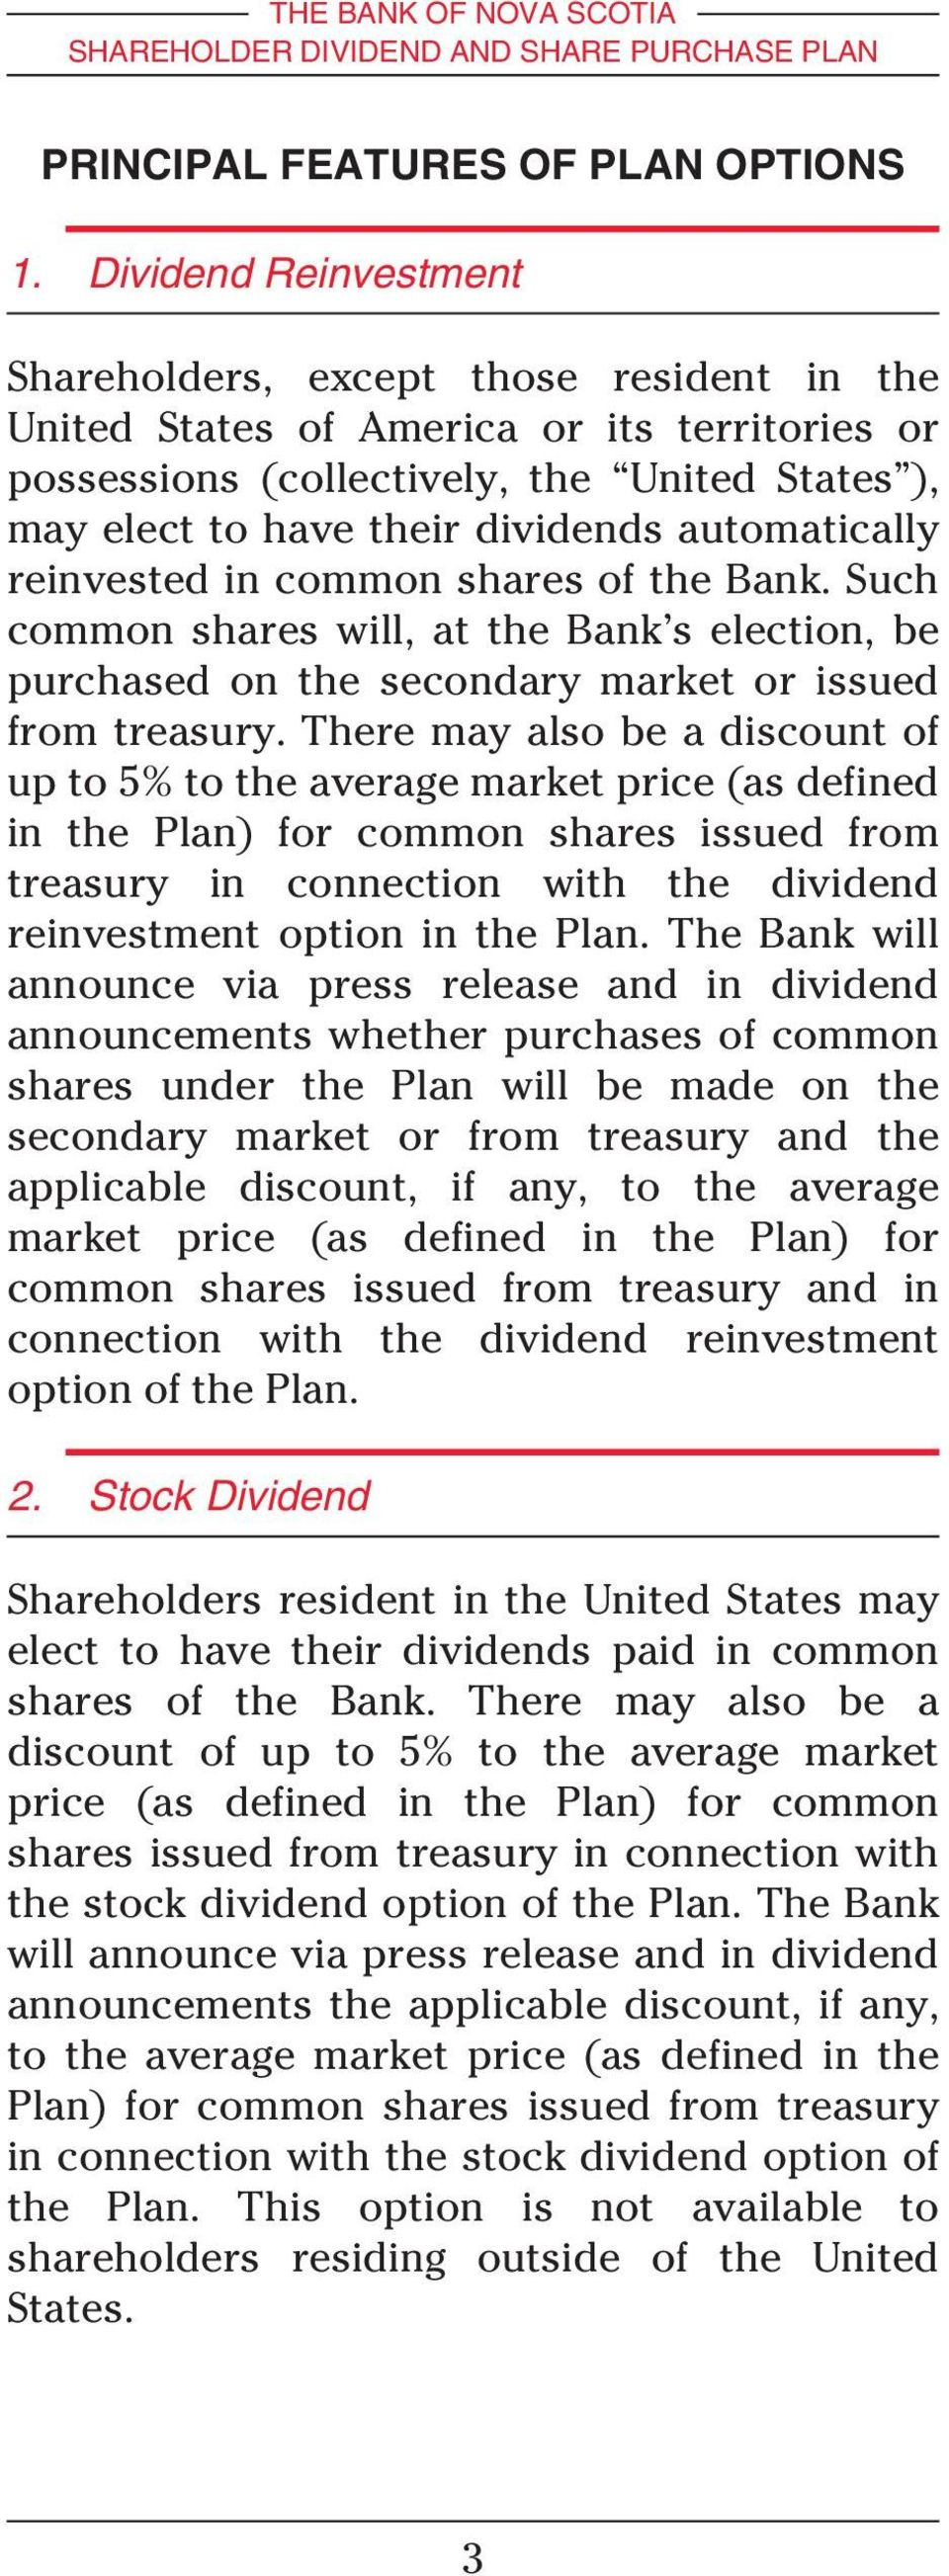 automatically reinvested in common shares of the Bank. Such common shares will, at the Bank s election, be purchased on the secondary market or issued from treasury.